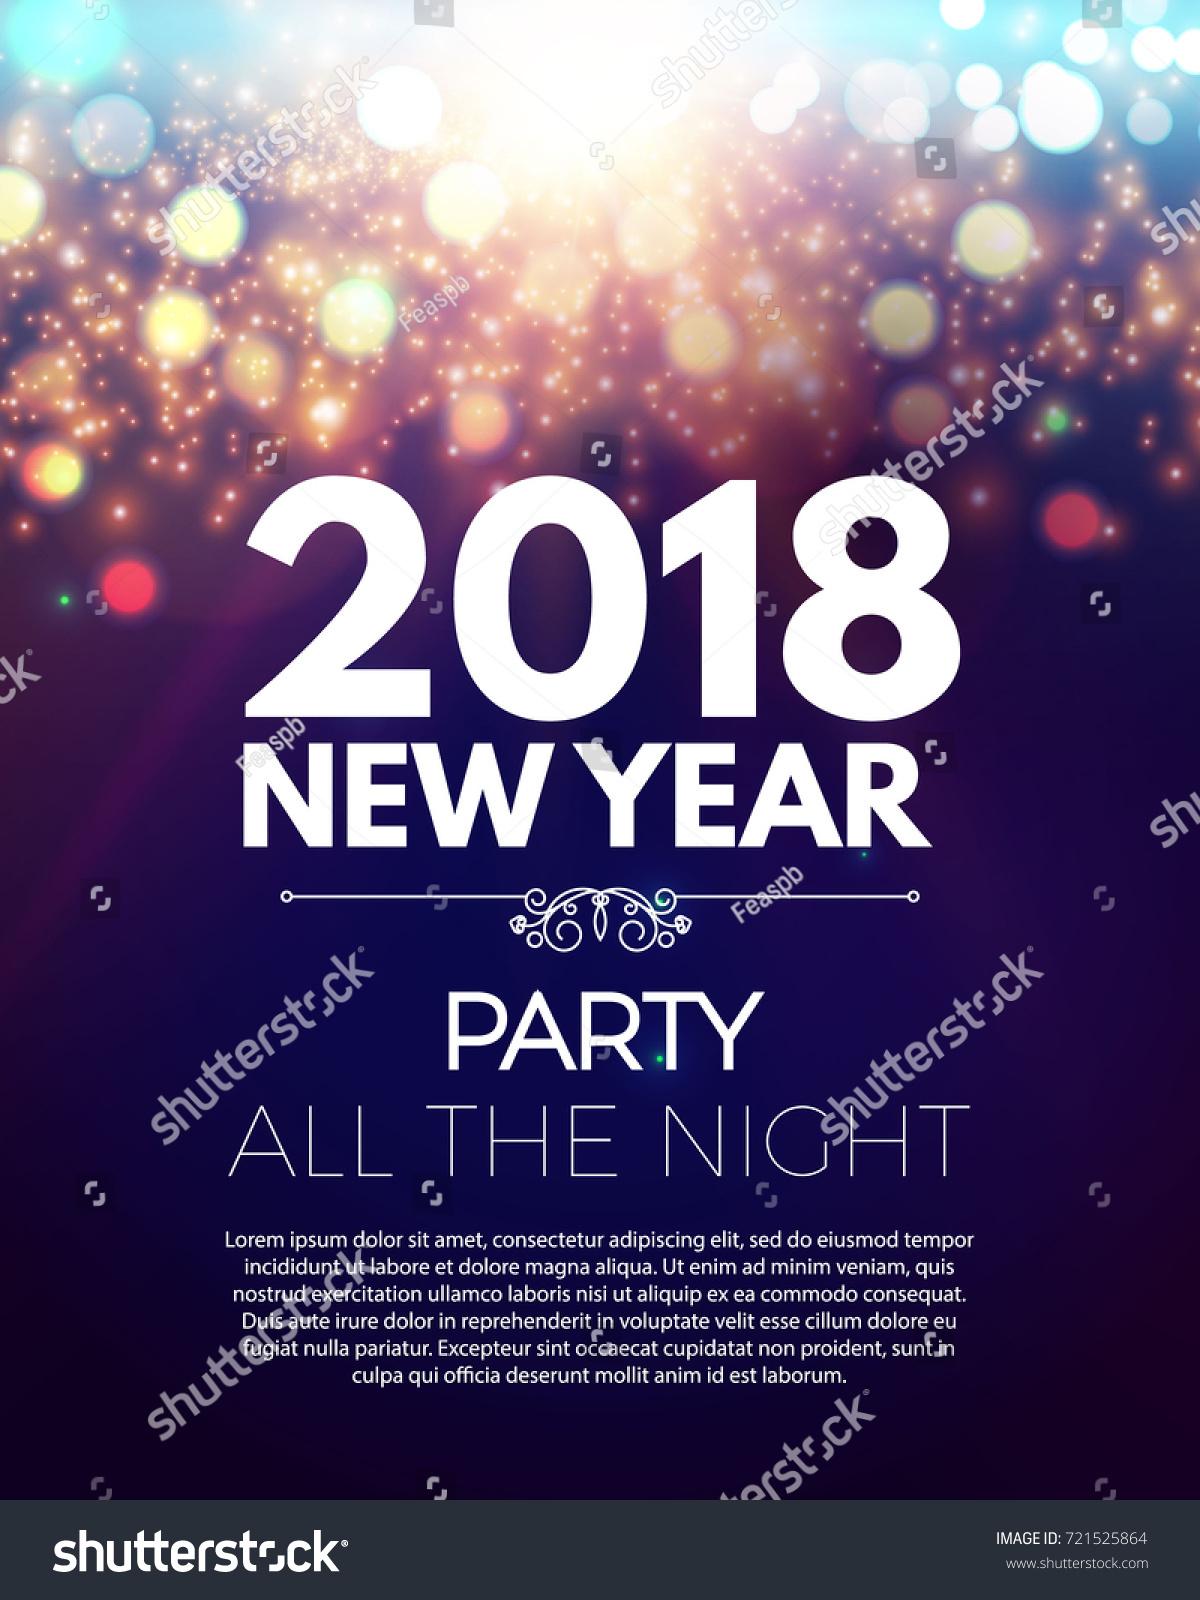 happy new 2018 year party poster template with bokeh light effects and place for text